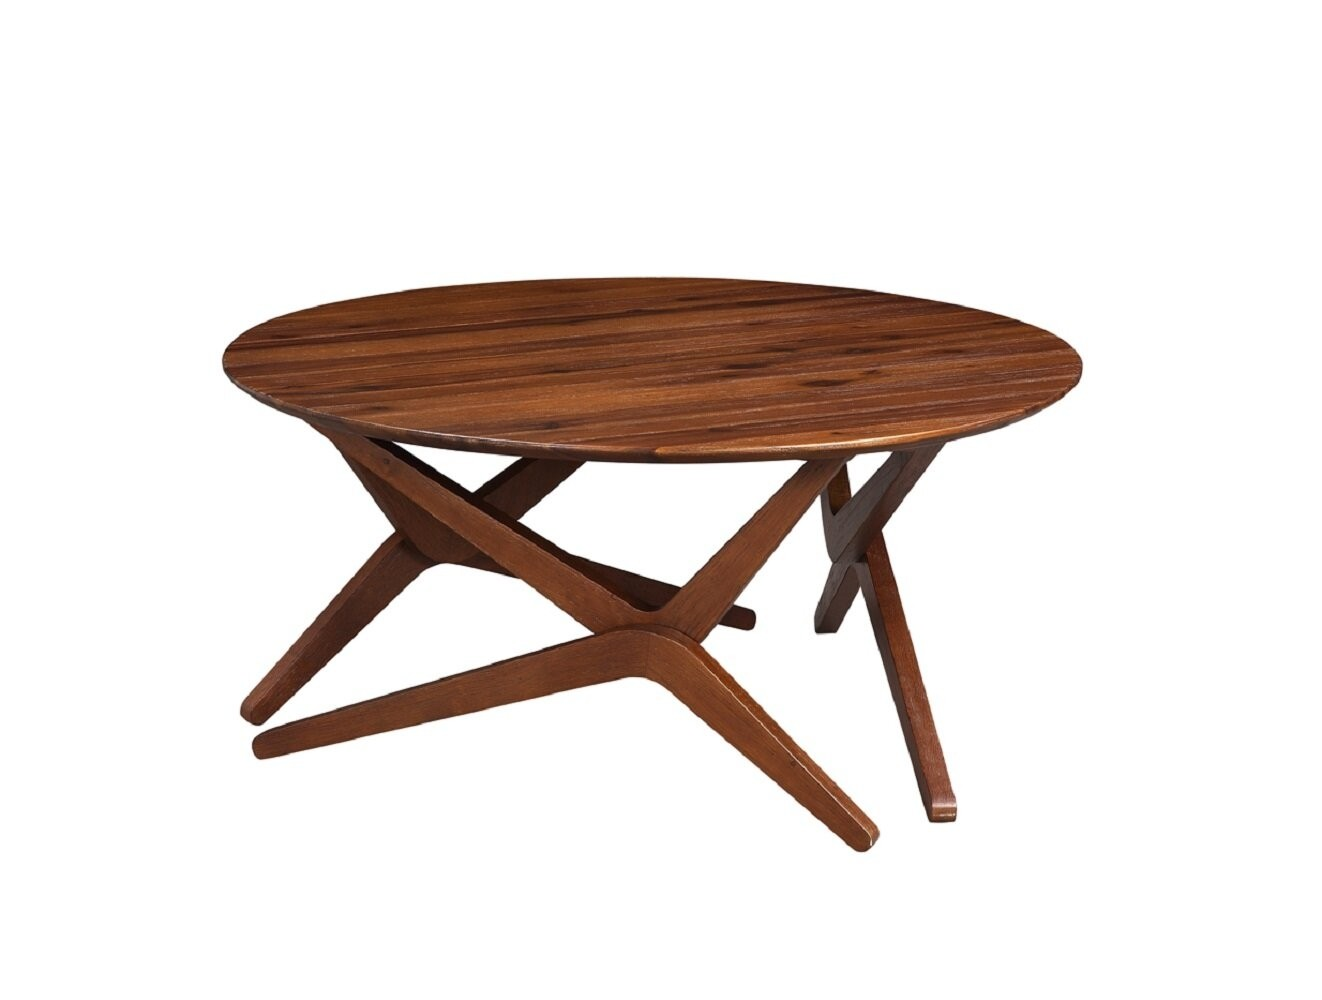 Benjara Round Wooden Adjustable Table with Boomerang Legs, Brown